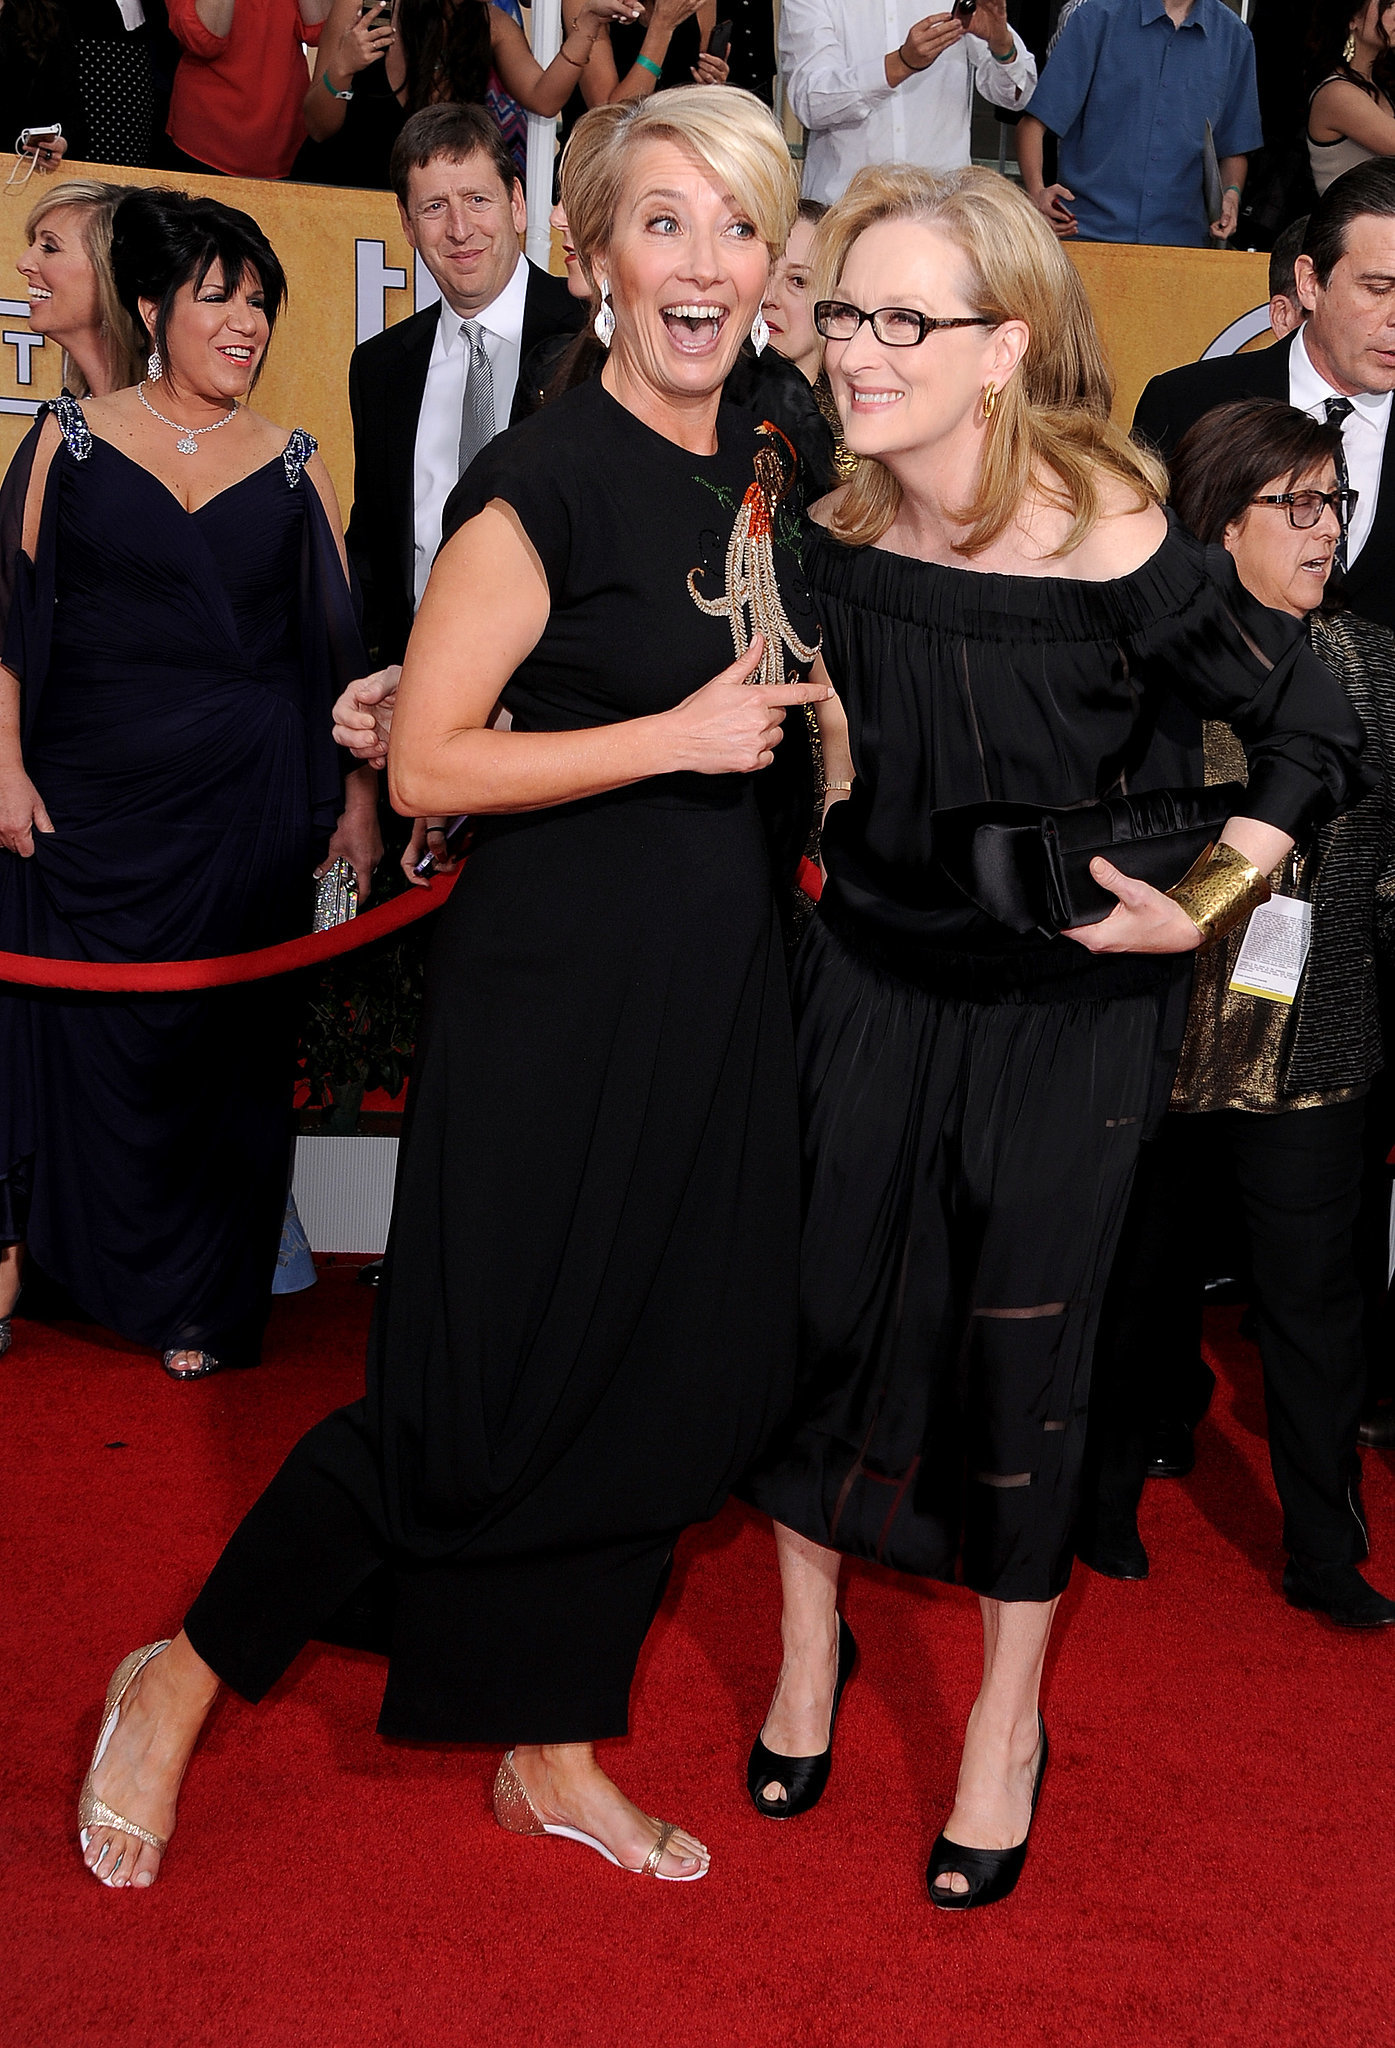 Emma Thompson and Meryl Streep shared a silly moment on the SAGs red carpet.